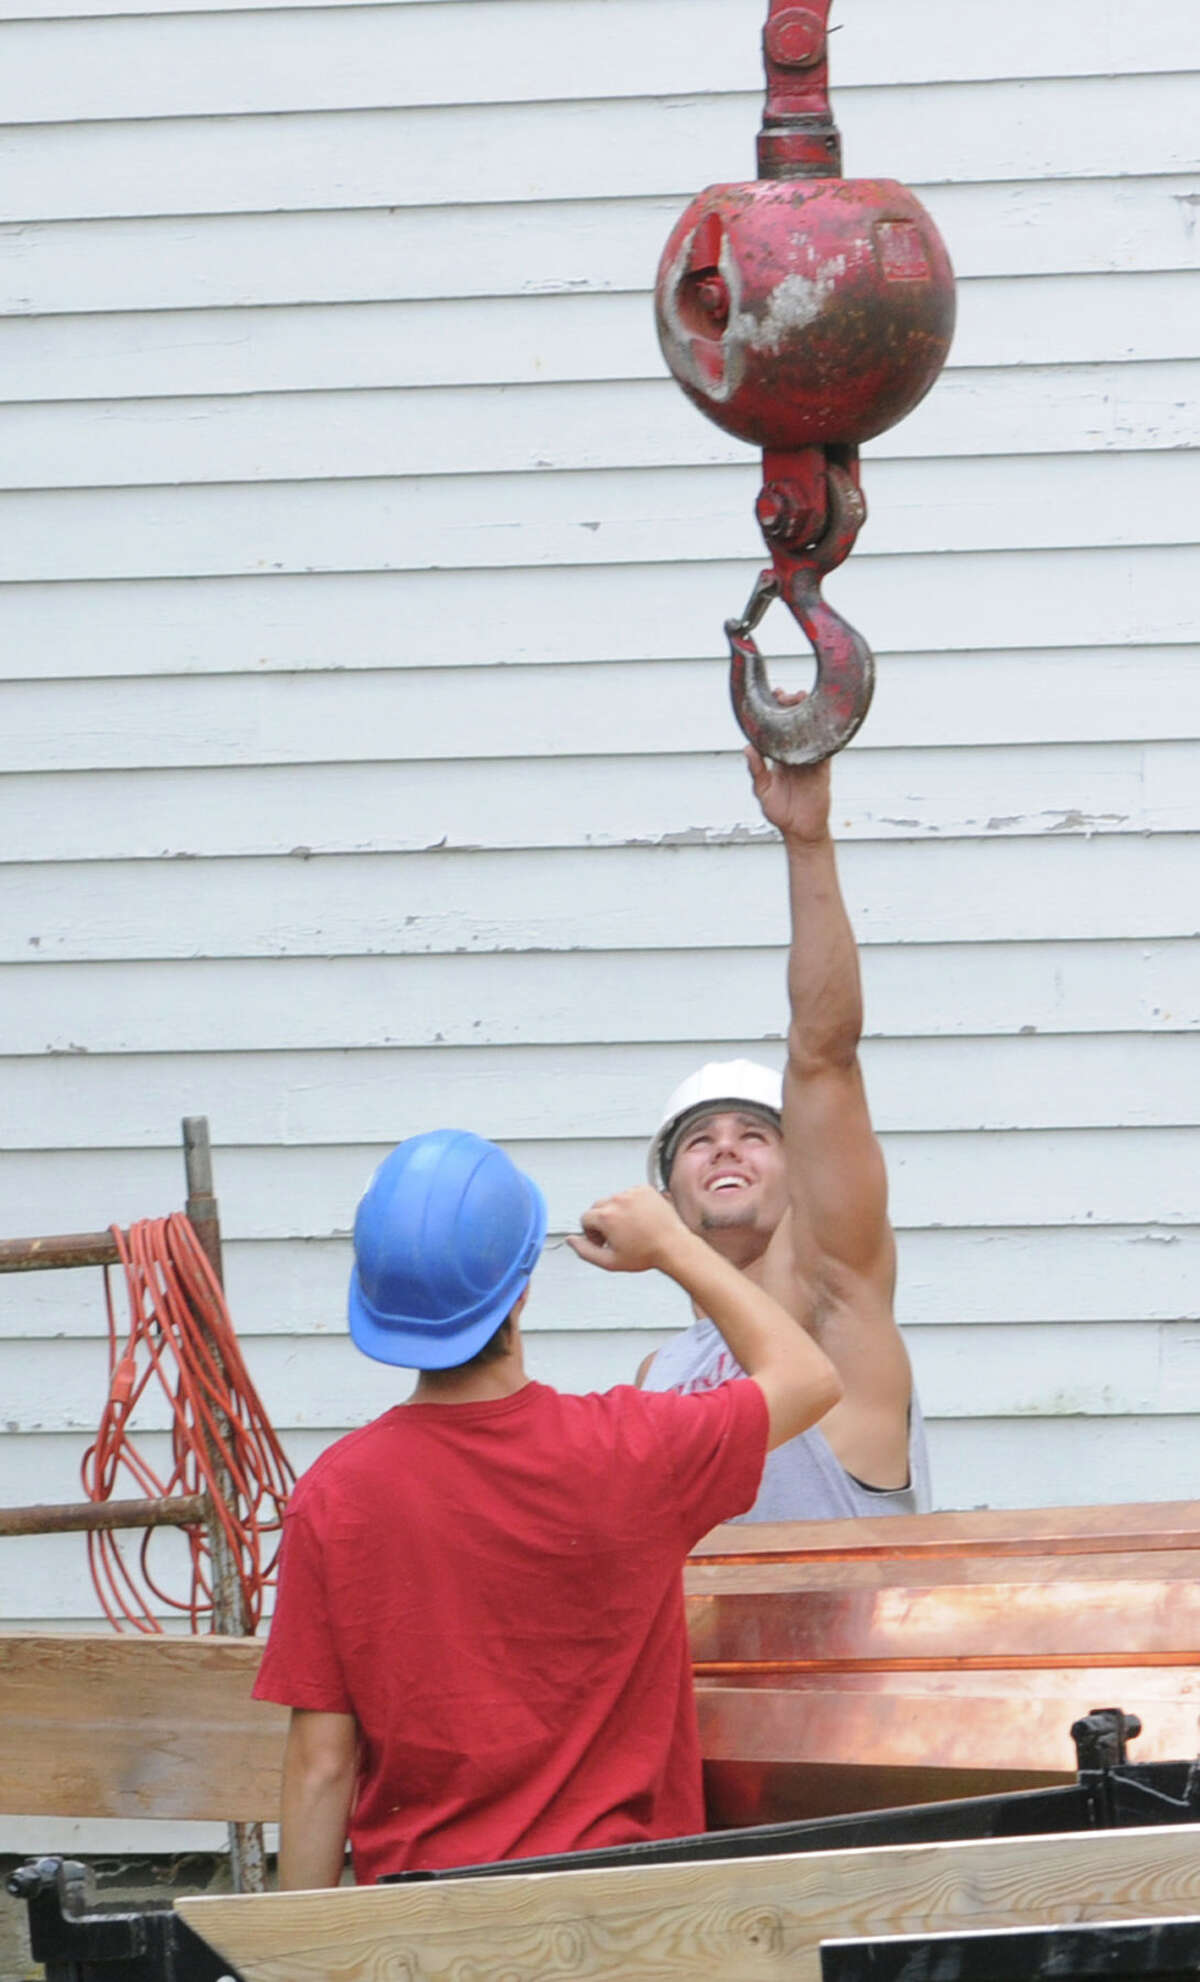 Jesse Tuttle, left, and Leo Lynch of Tuttle Construction get ready to hook a spire on a crane for the Rensselaerville Presbyterian church on Wednesday, August 1, 2012 in Rensselaerville, N.Y. The spire was lifted and placed on the steeple. (Lori Van Buren / Times Union)